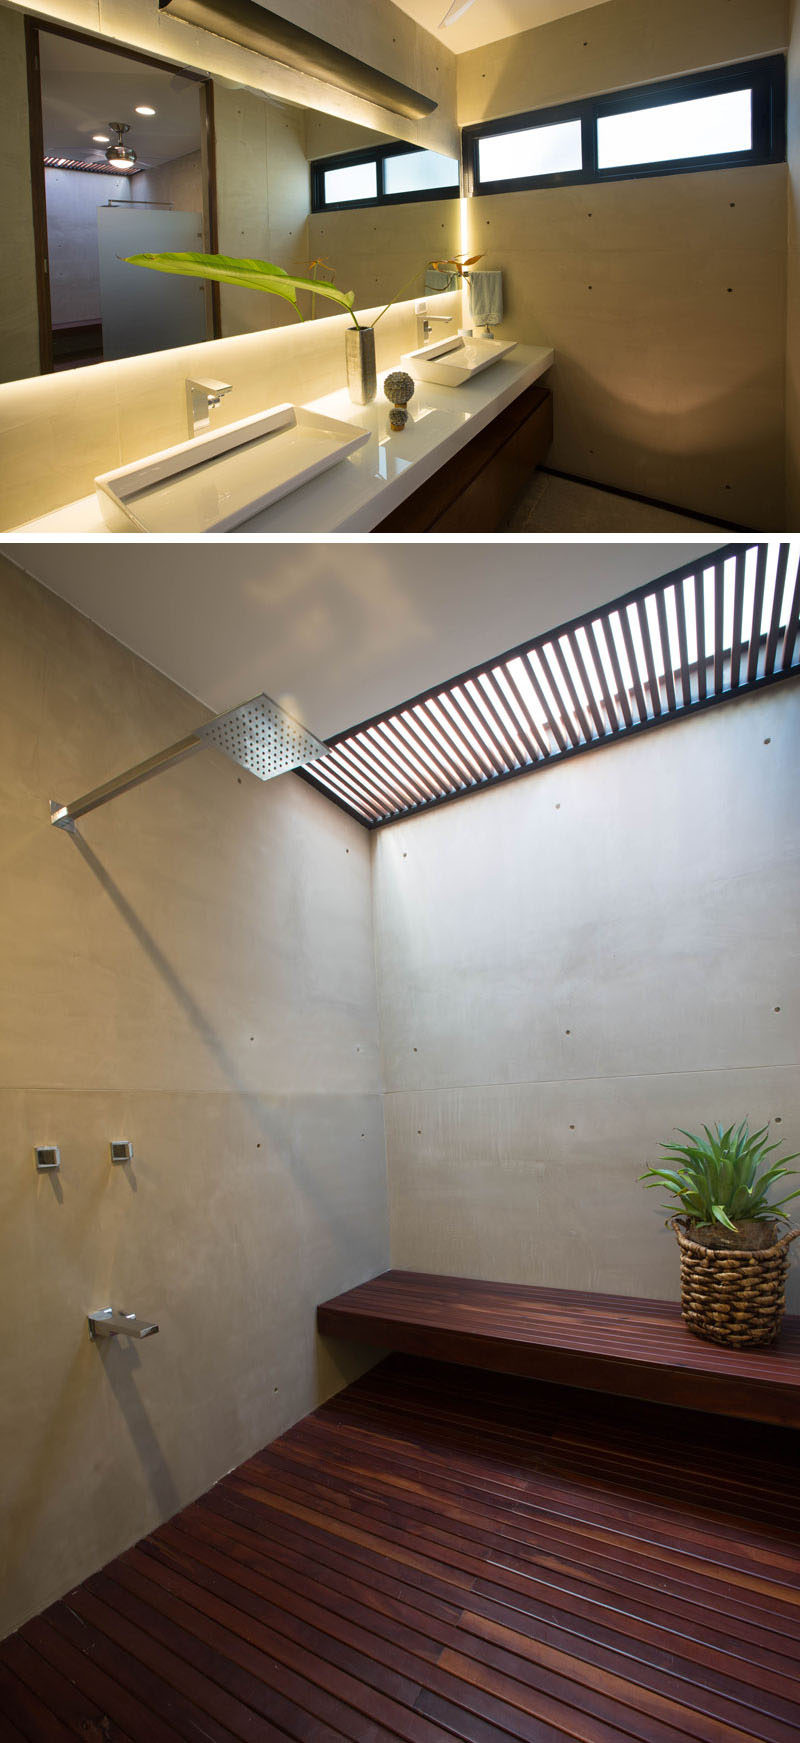 In this bathroom there's a vanity with double sinks and a shower that has a wooden floor, a skylight and built-in bench.